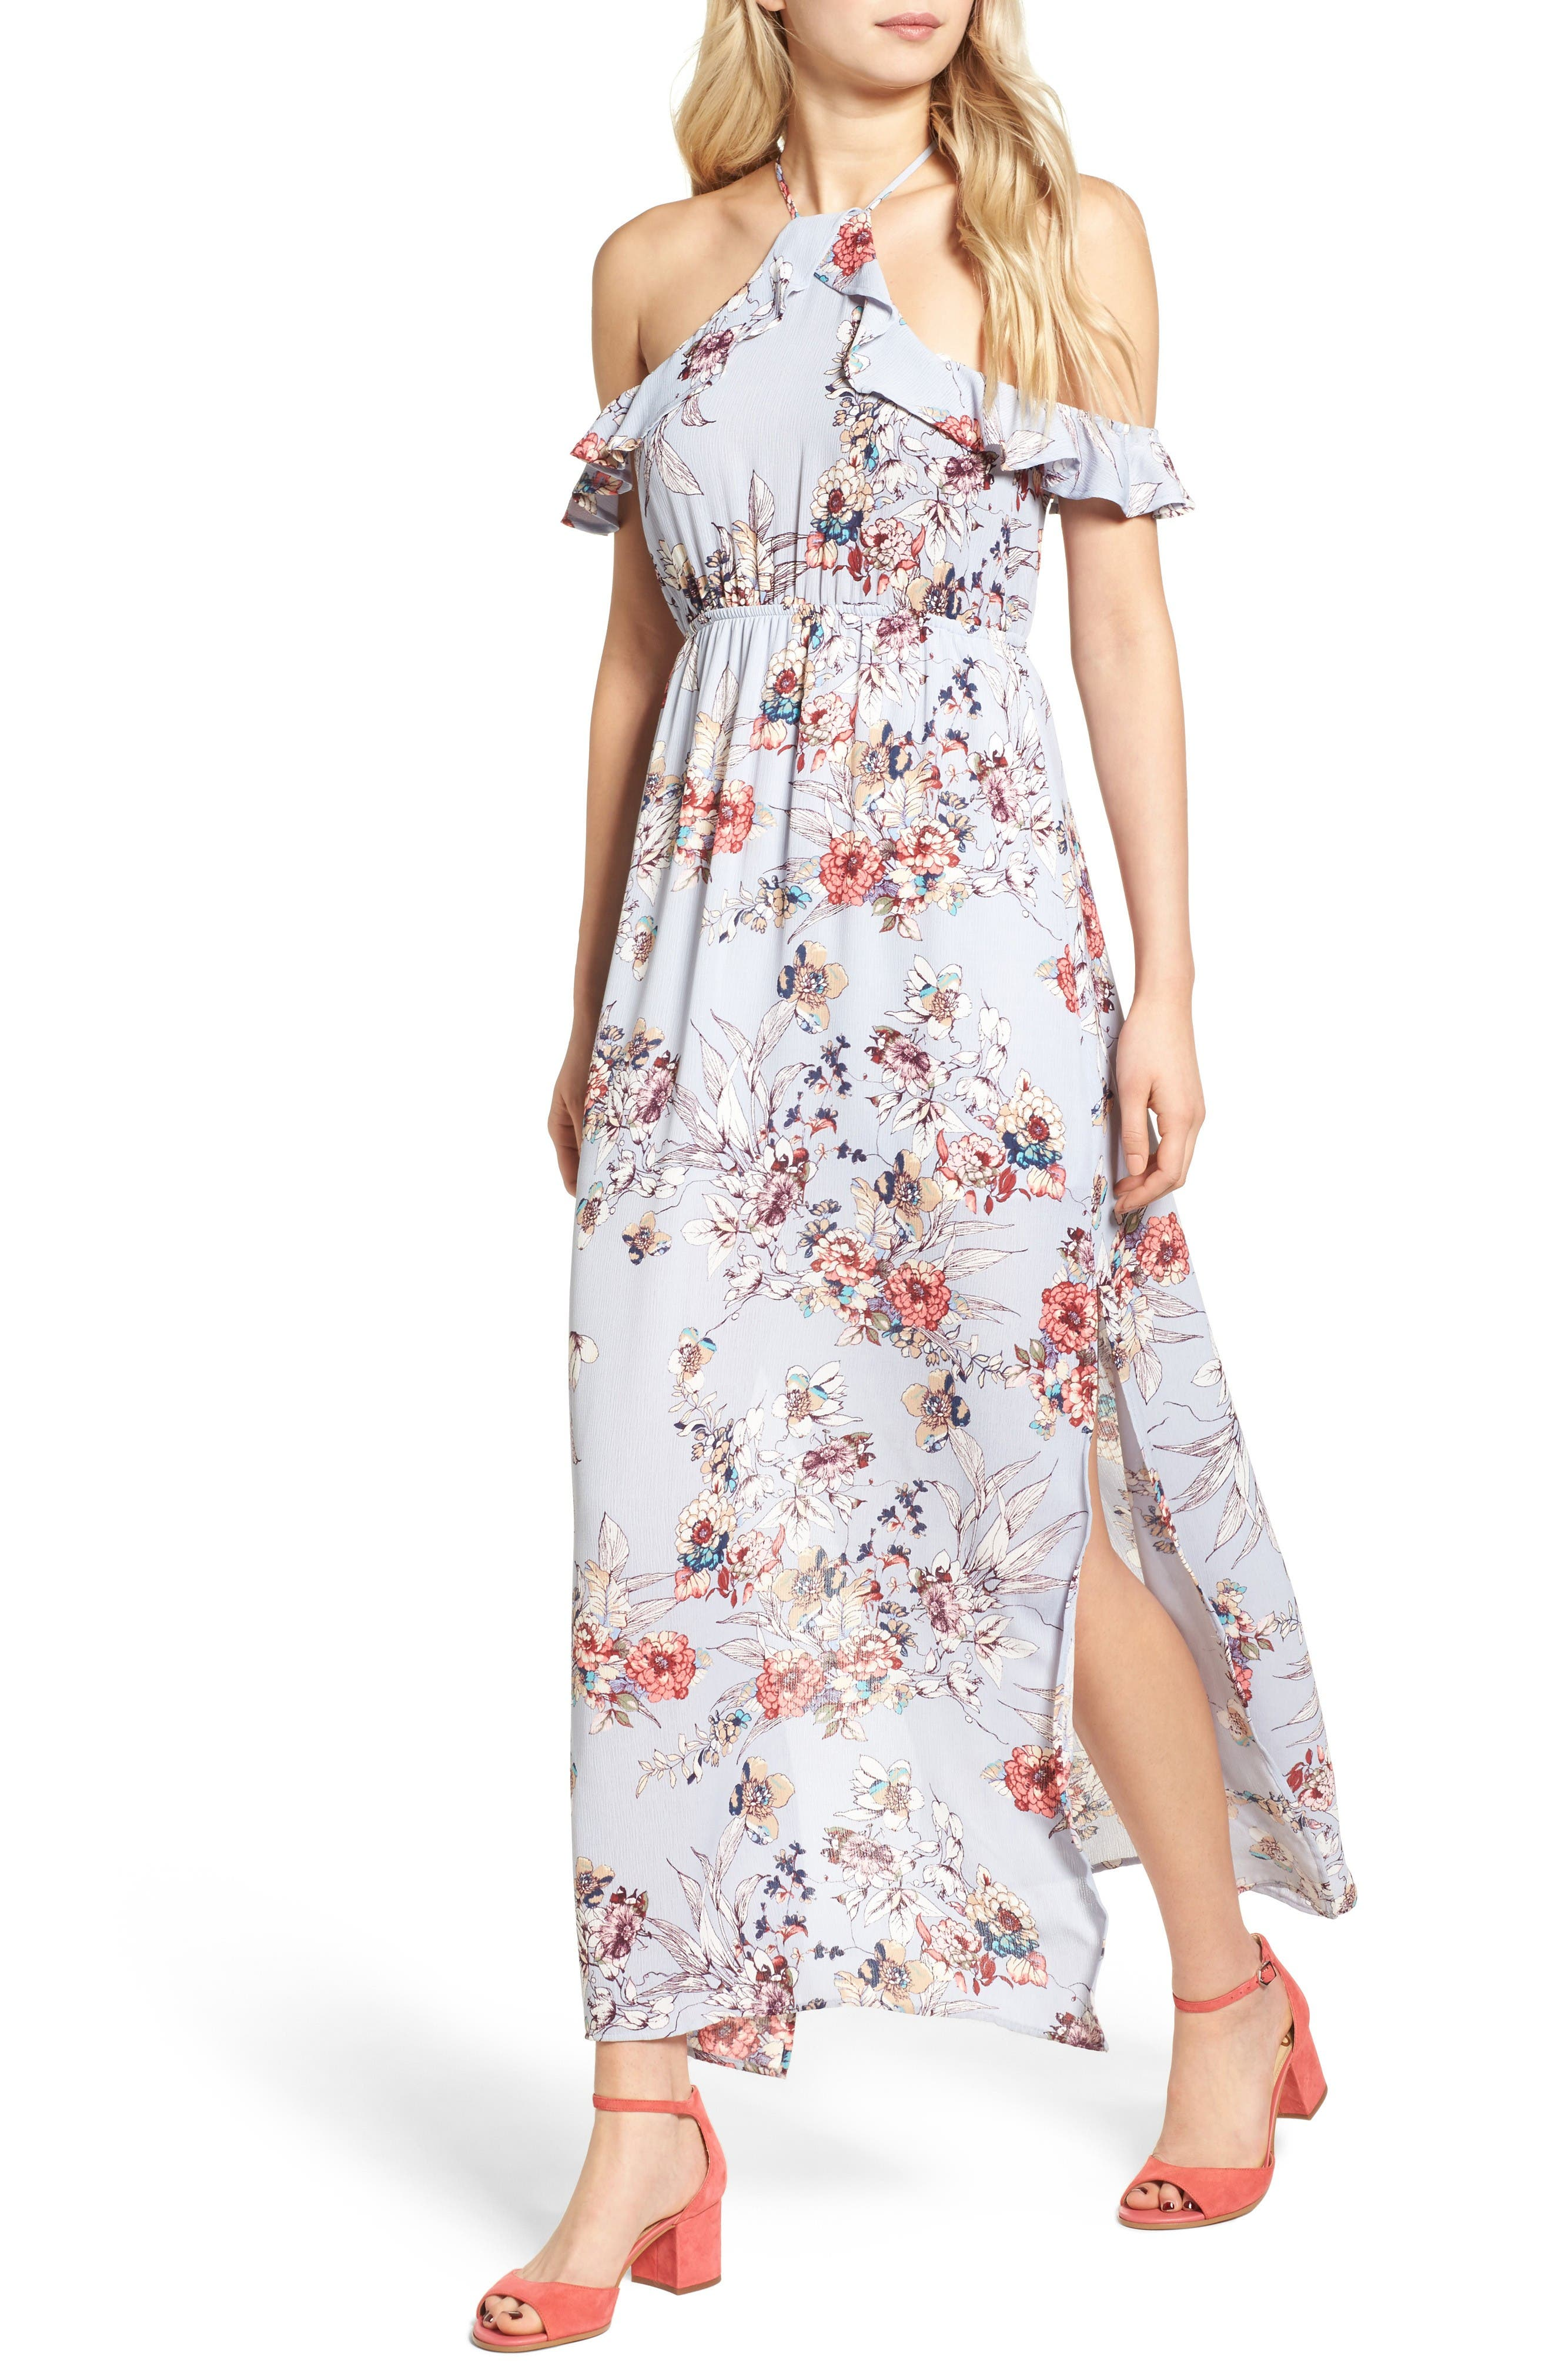 Main Image - One Clothing Floral Cold Shoulder Maxi Dress